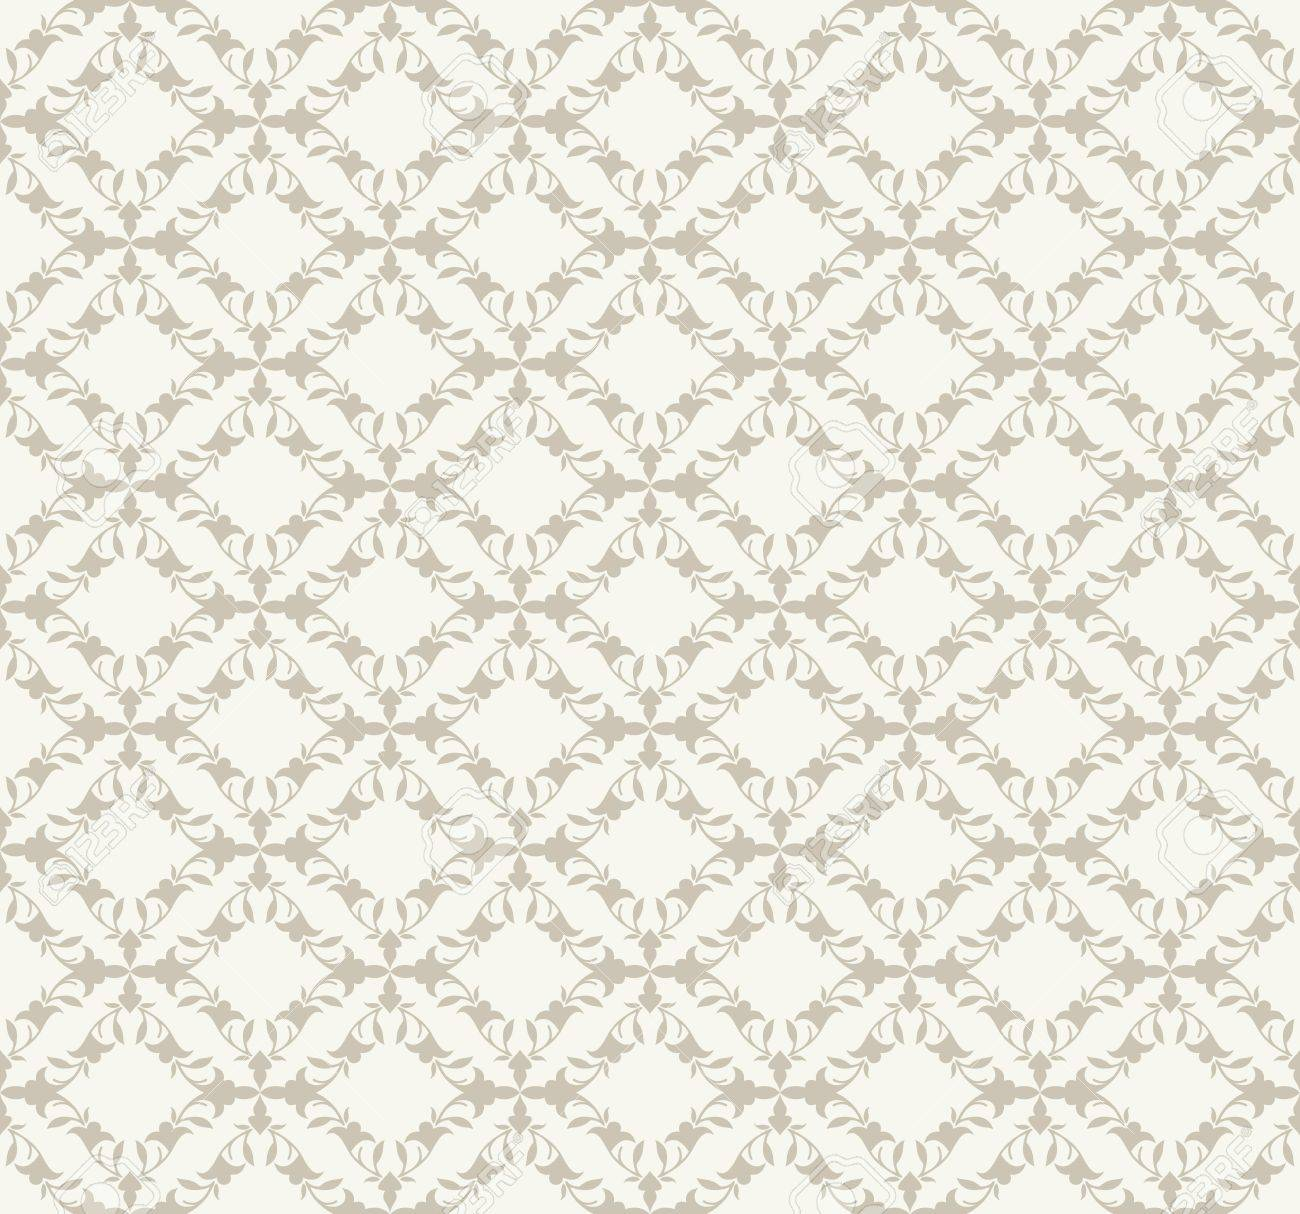 Fancy Wallpaper Seamless Fancy Wallpaper And Background Royalty Free Cliparts